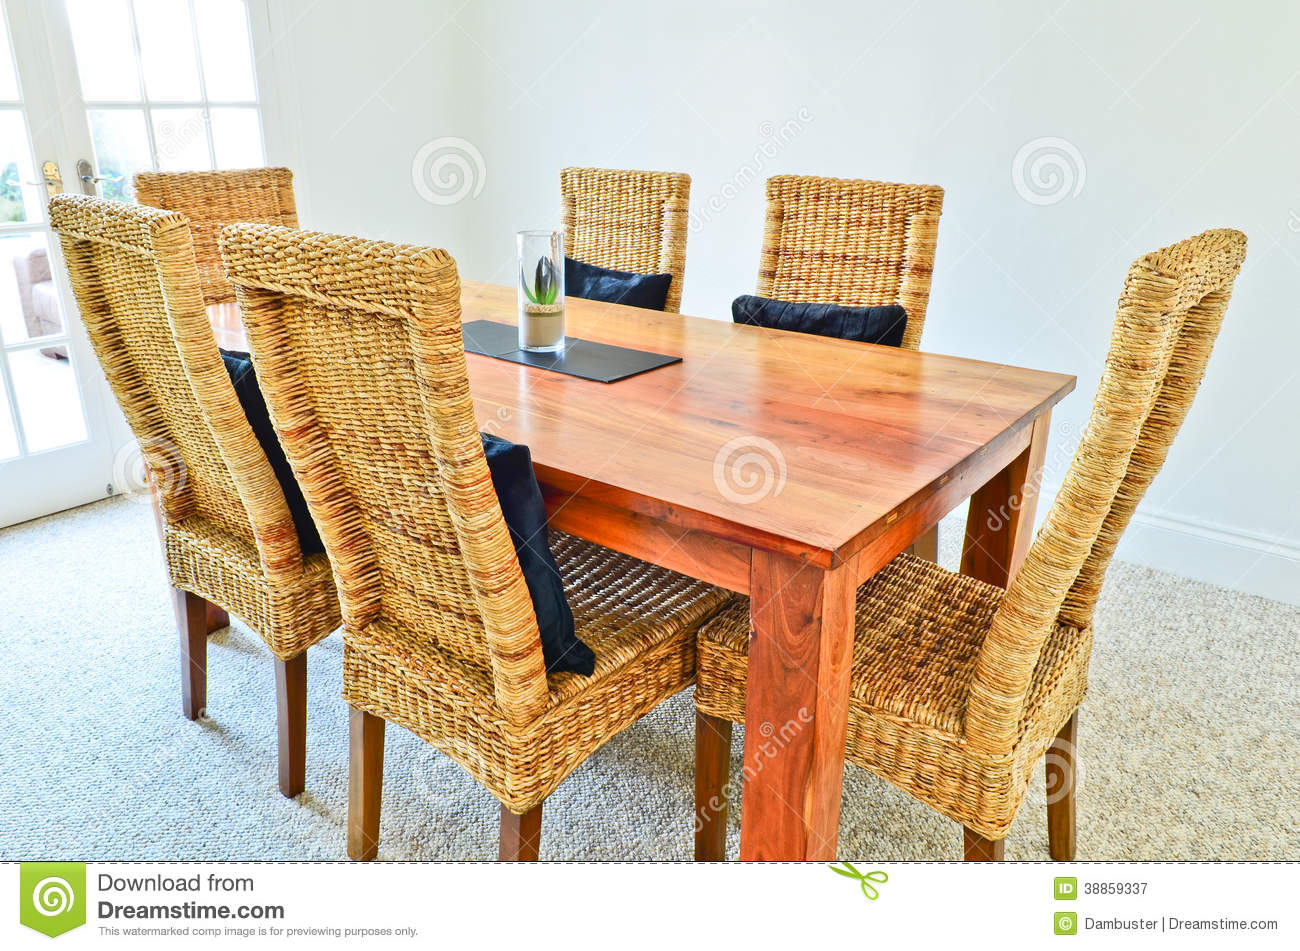 dining room table and chairs stock photo image 38859337